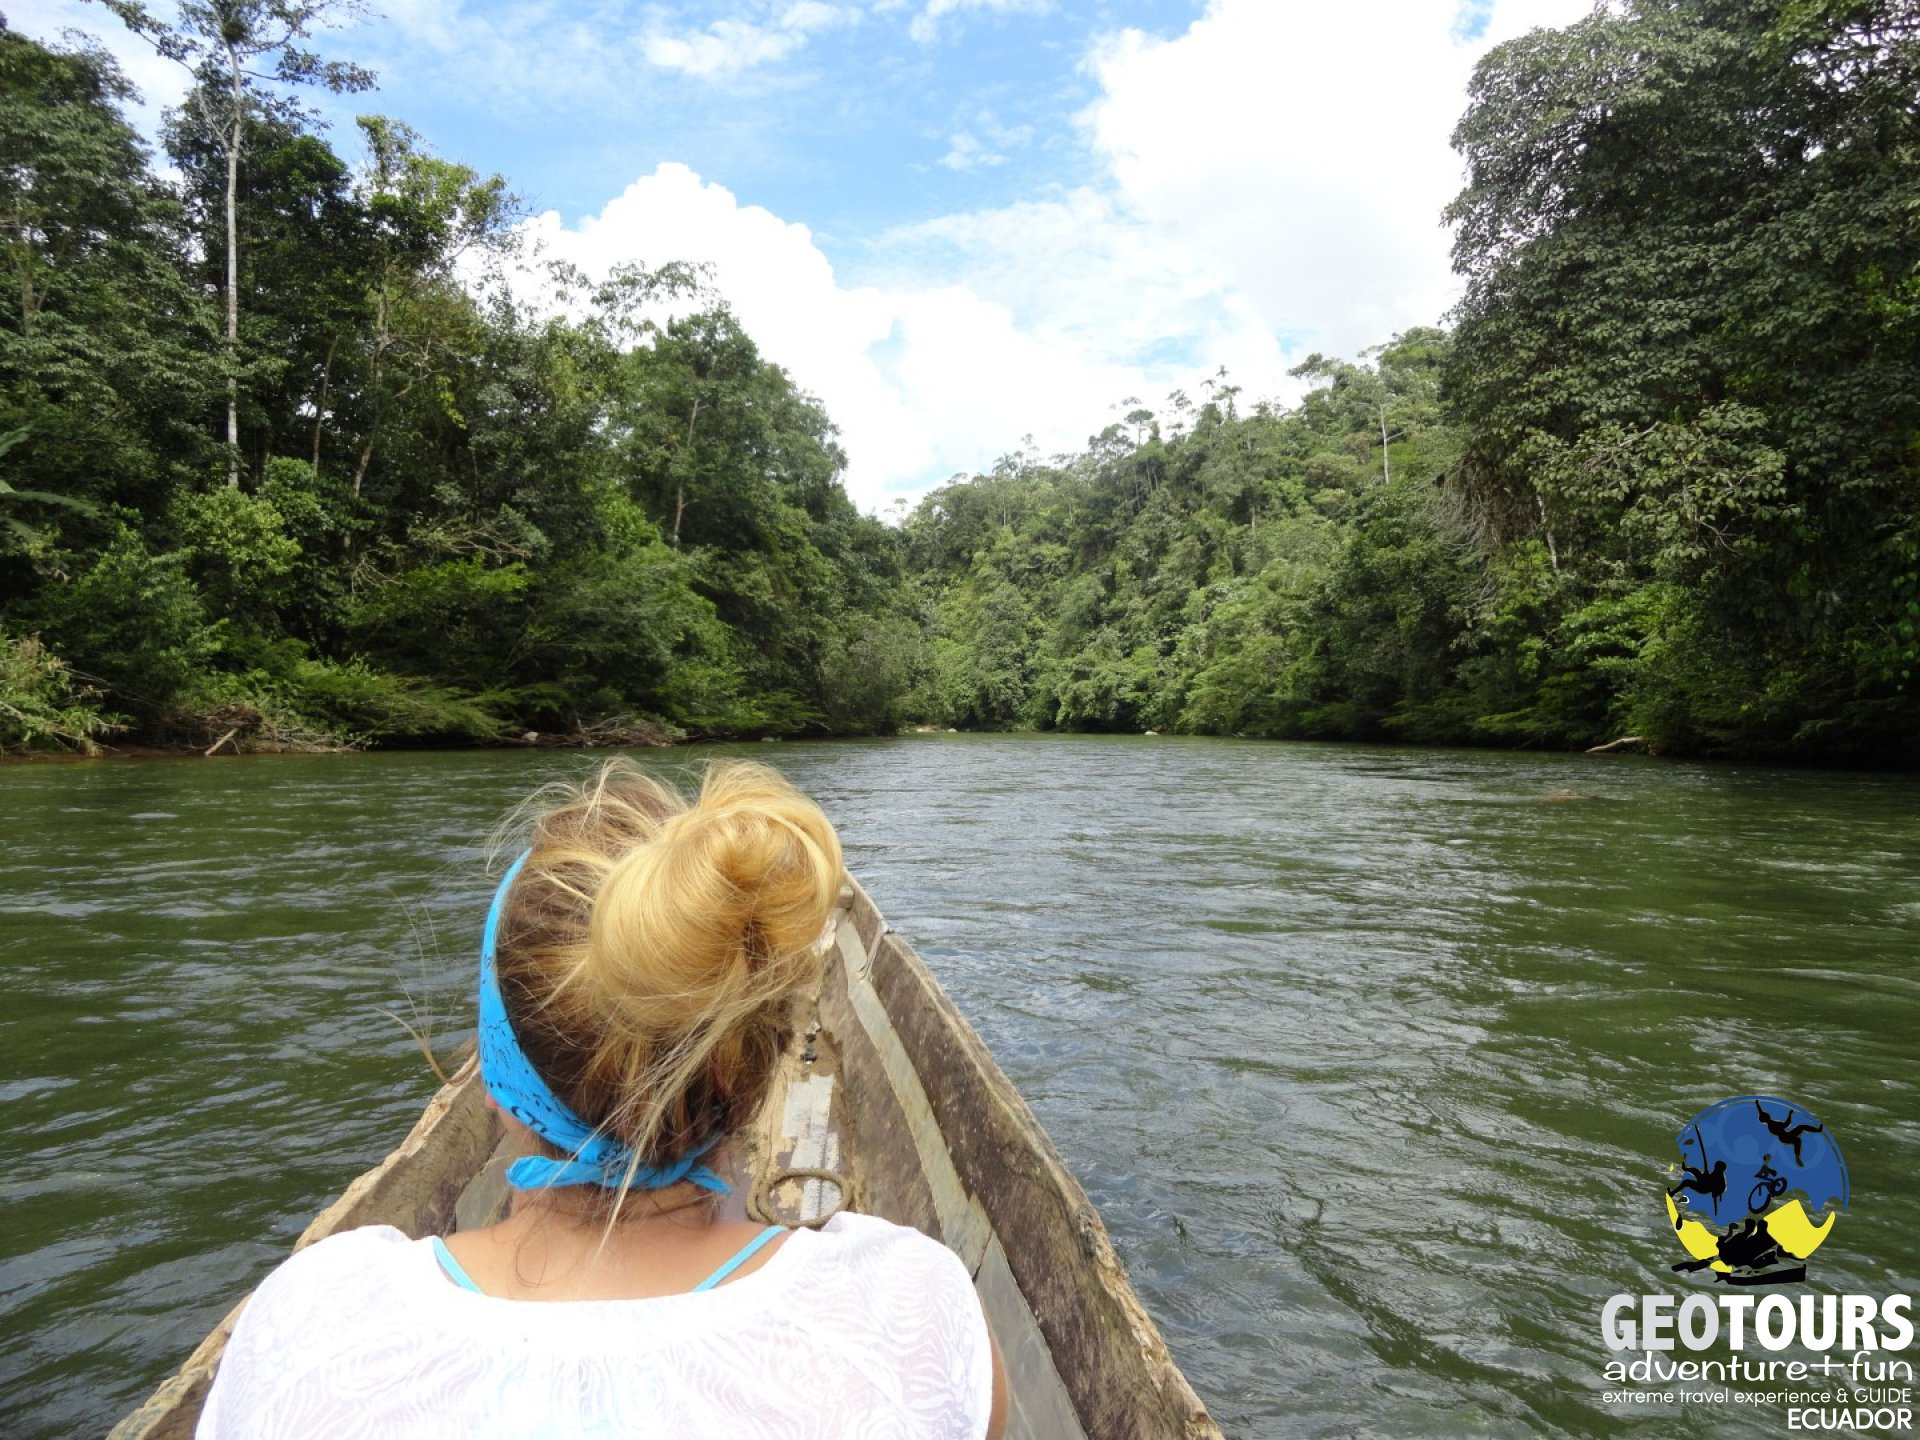 Puyopungo – Full Day Jungle Highlights Tour